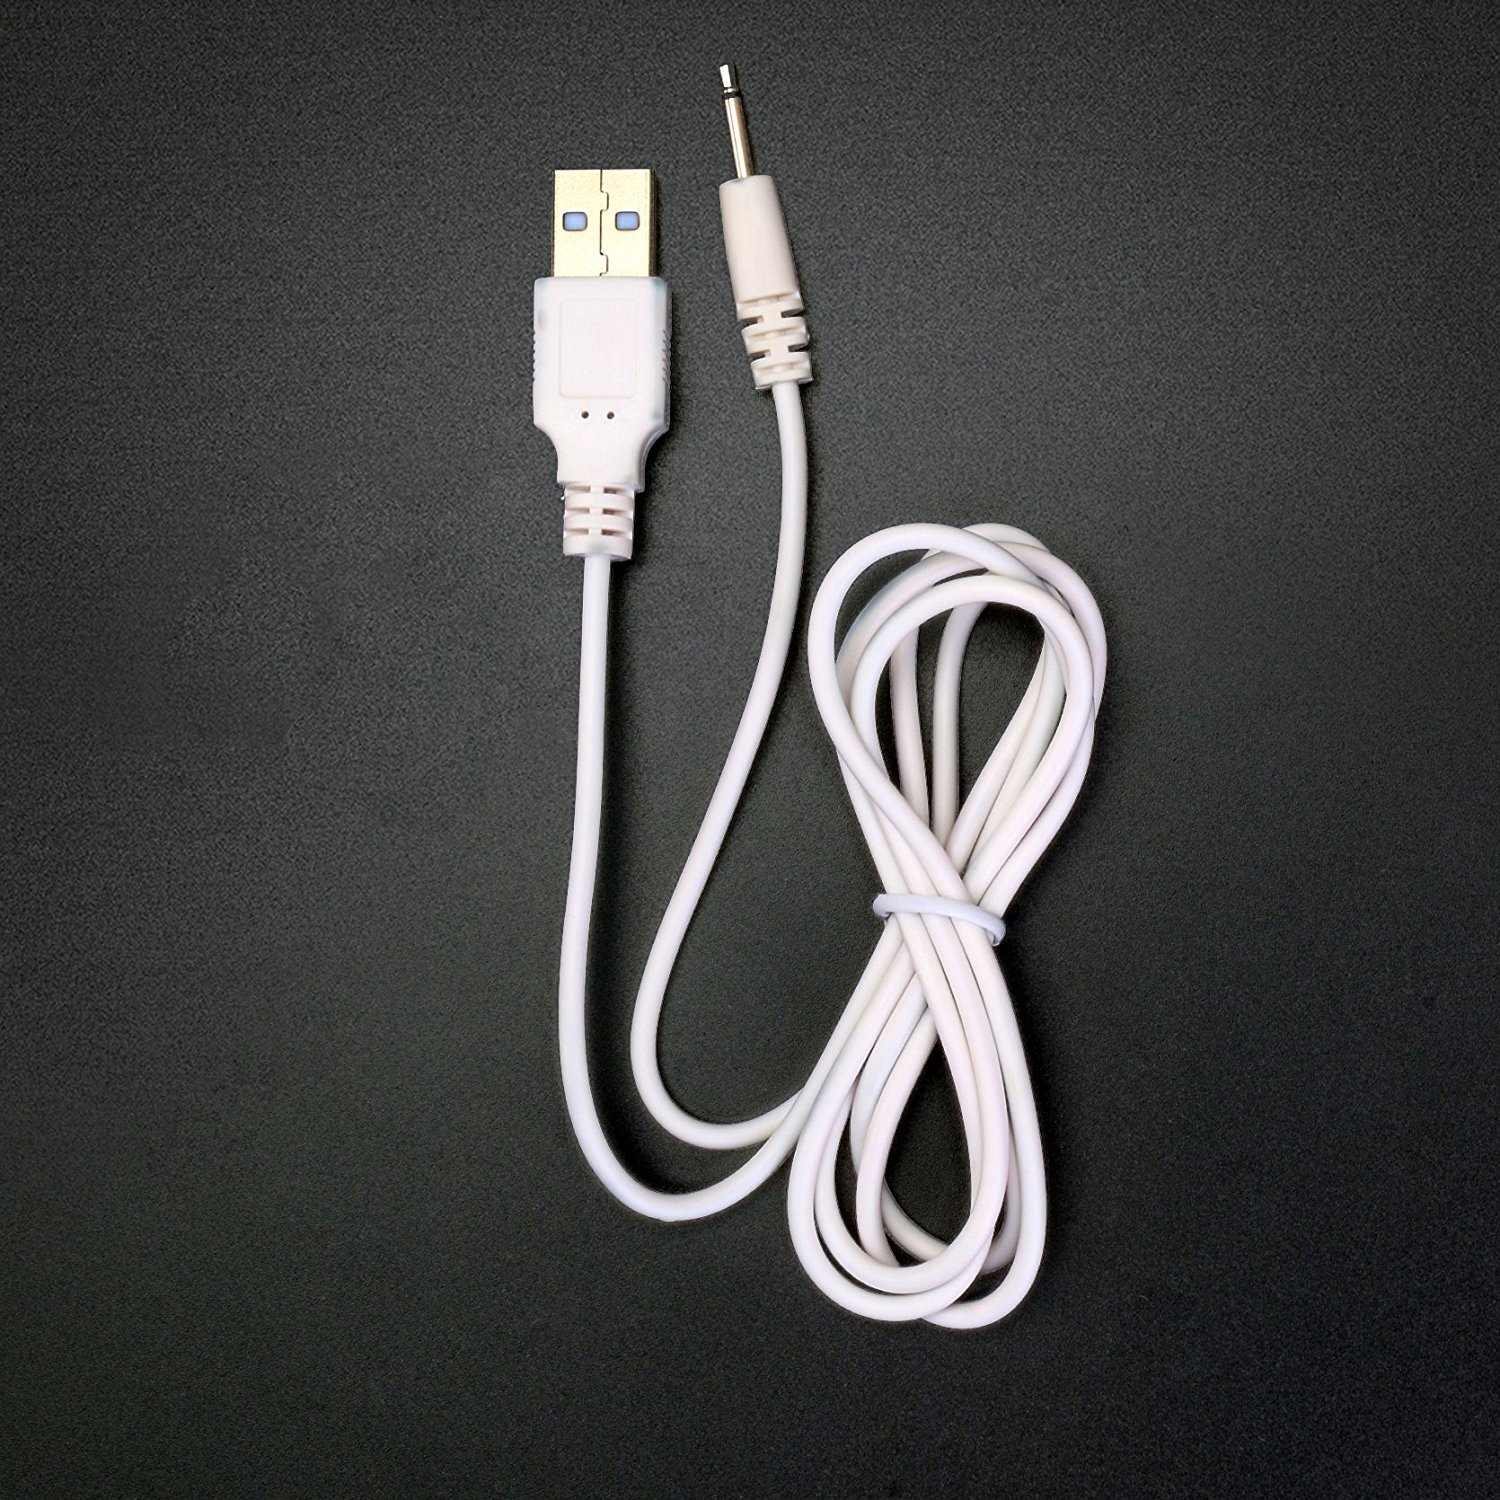 USB DC Charging Cable for Sex Vibrator Massager Products Keluyi